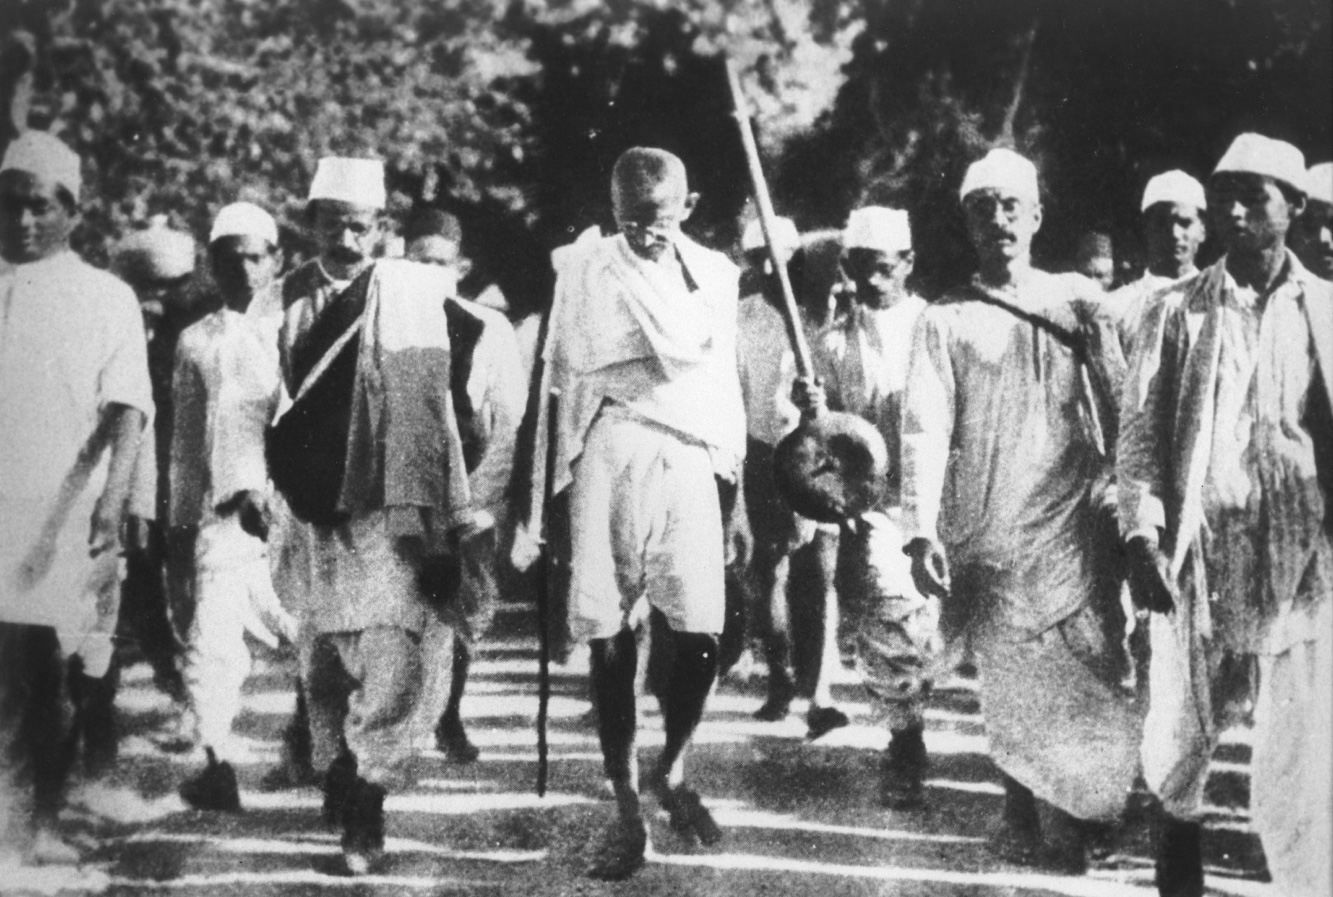 Supporting India's freedom movement